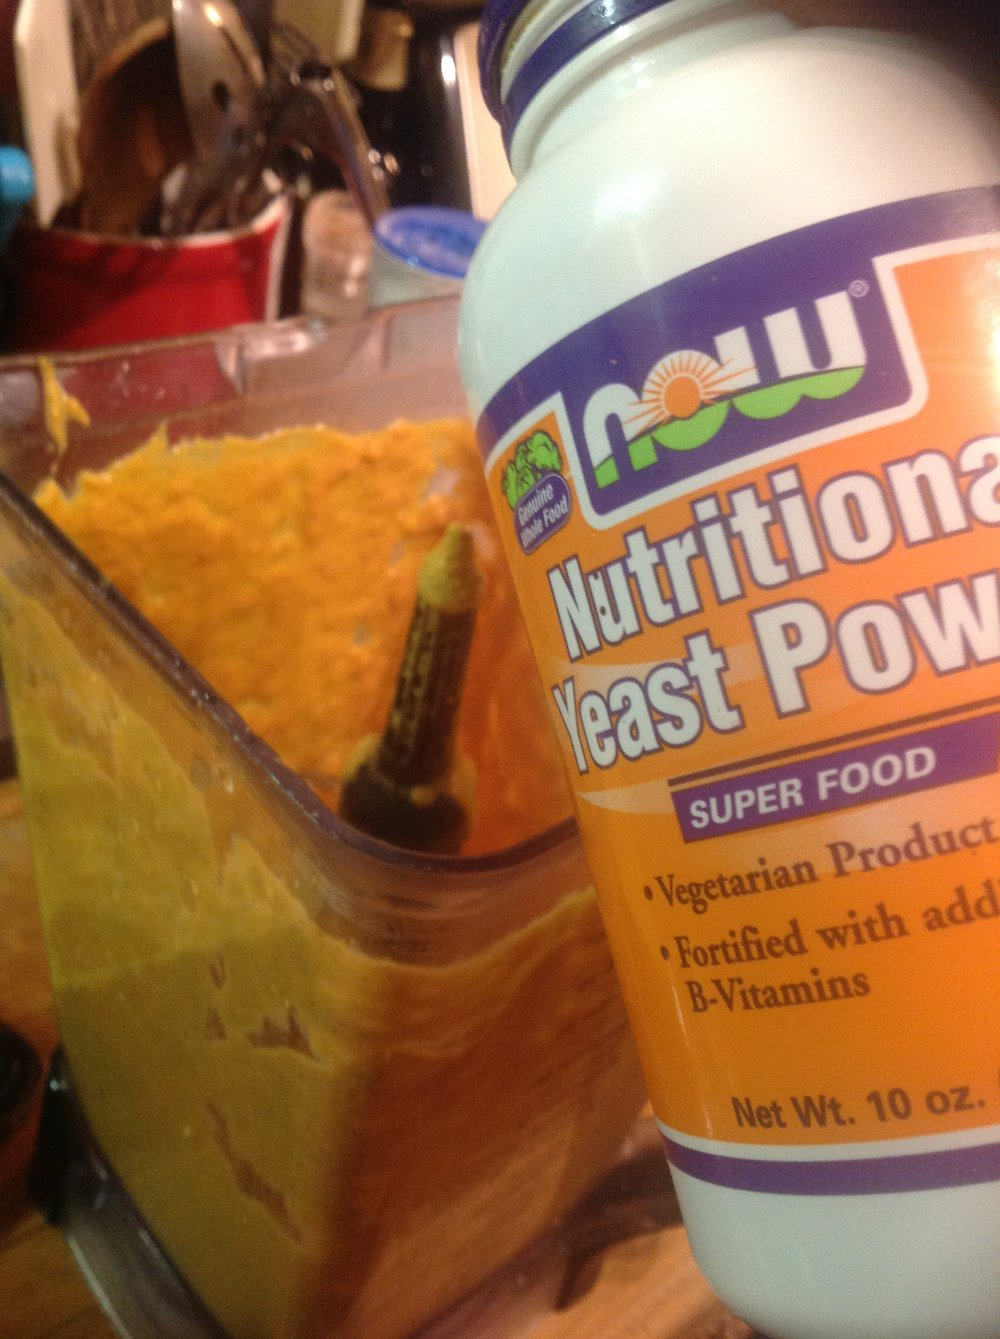 Chef's Plant-Based Tip: Nutritional Yeast bring cheesy, umami flavor for this dairy-free recipe